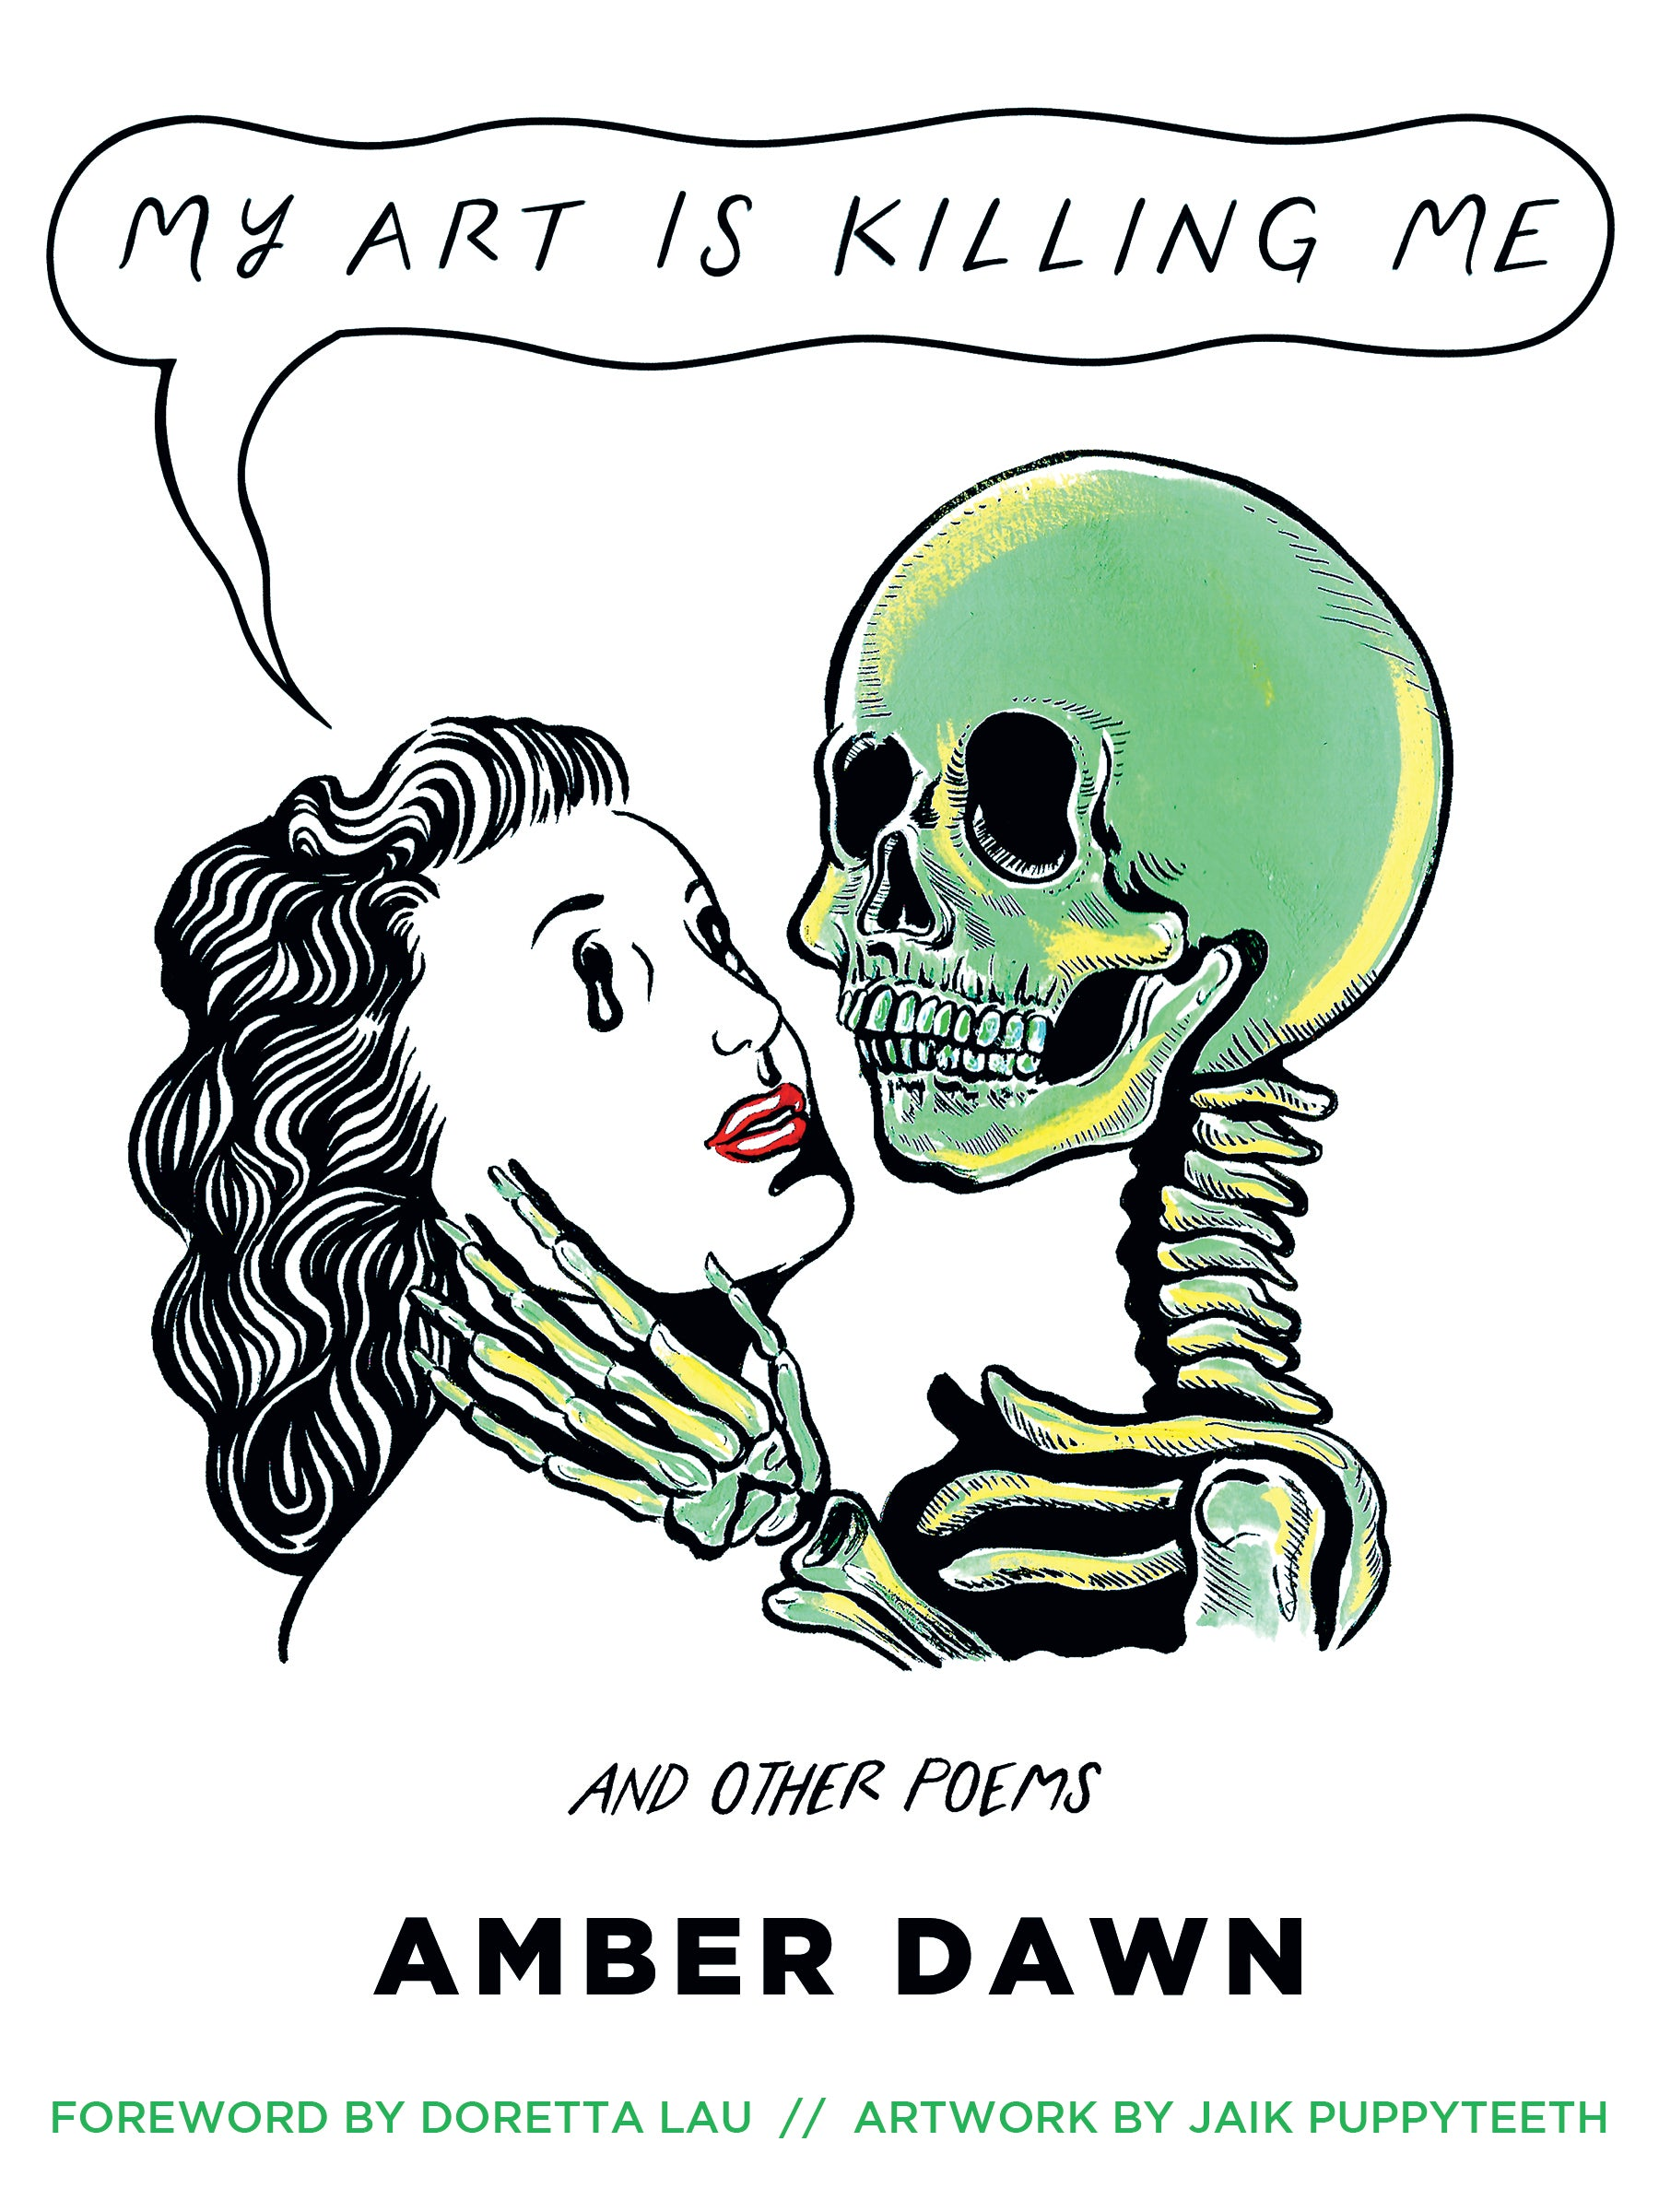 A green skeleton caresses a woman's face.